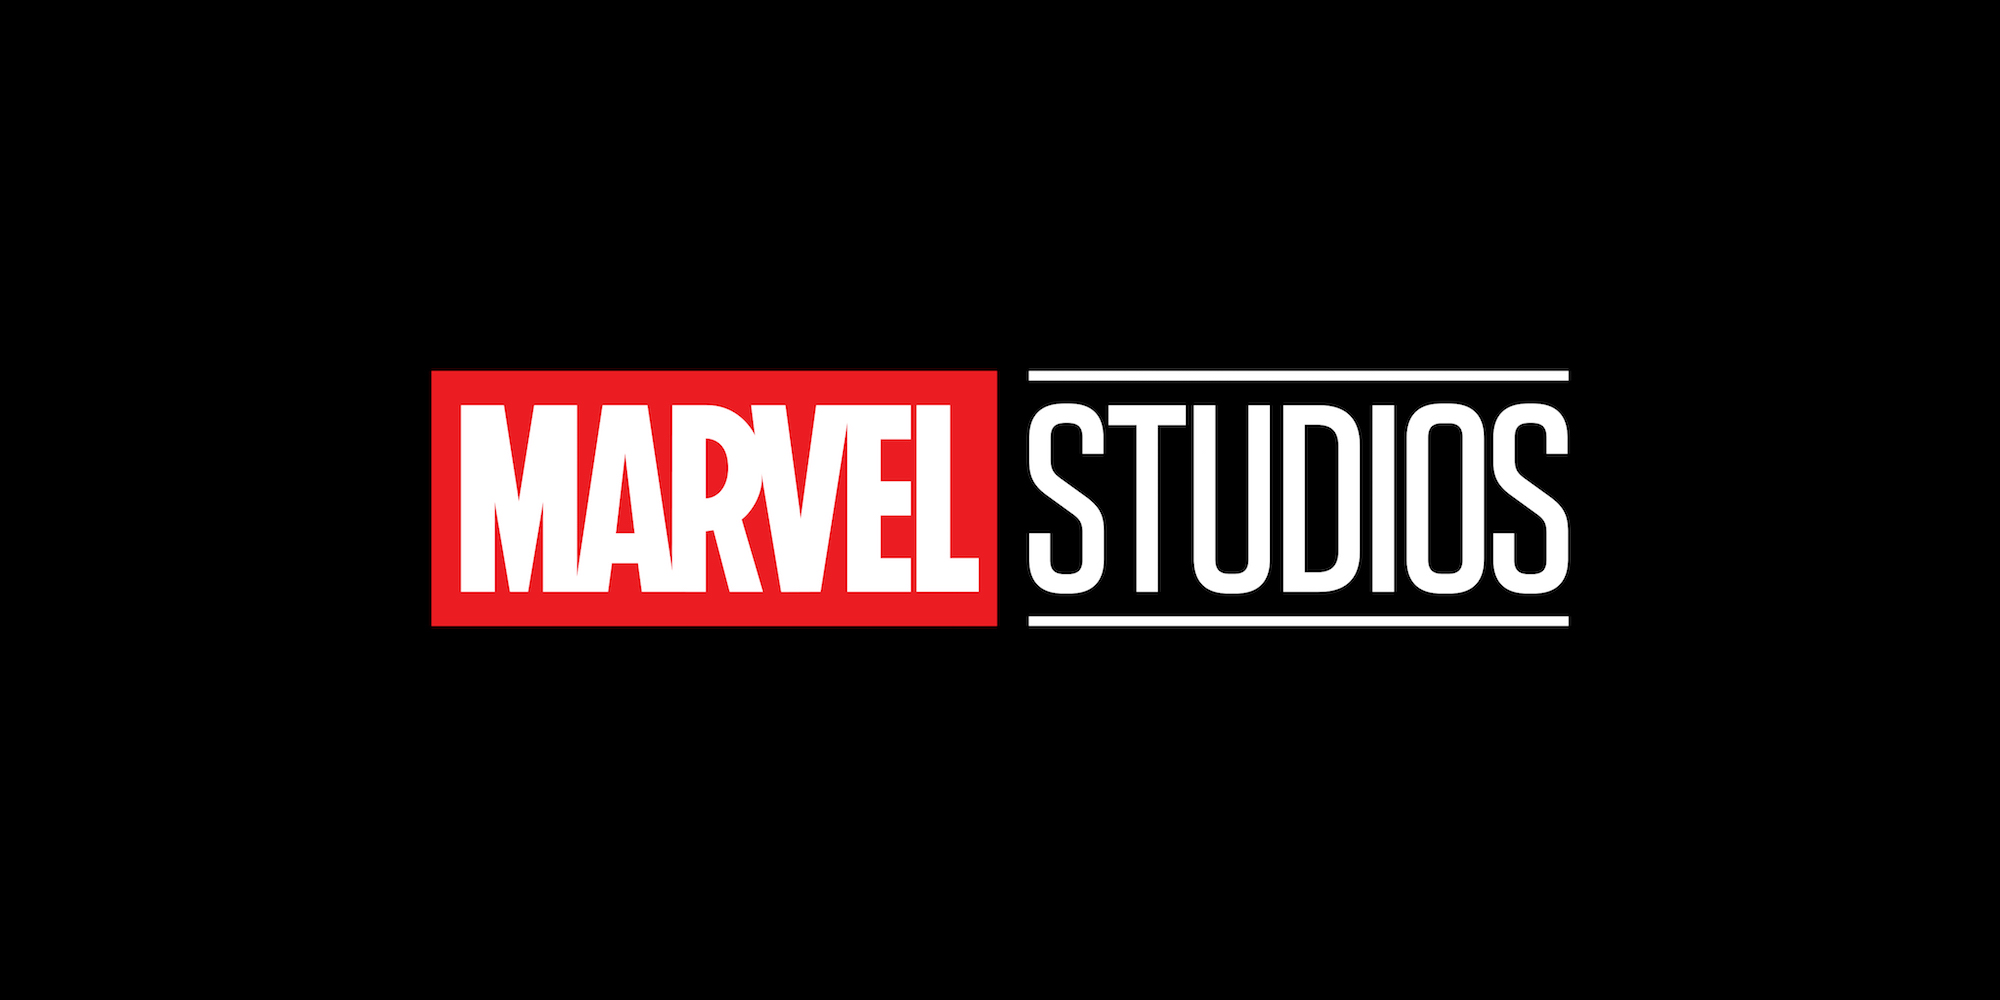 Marvel Studio films